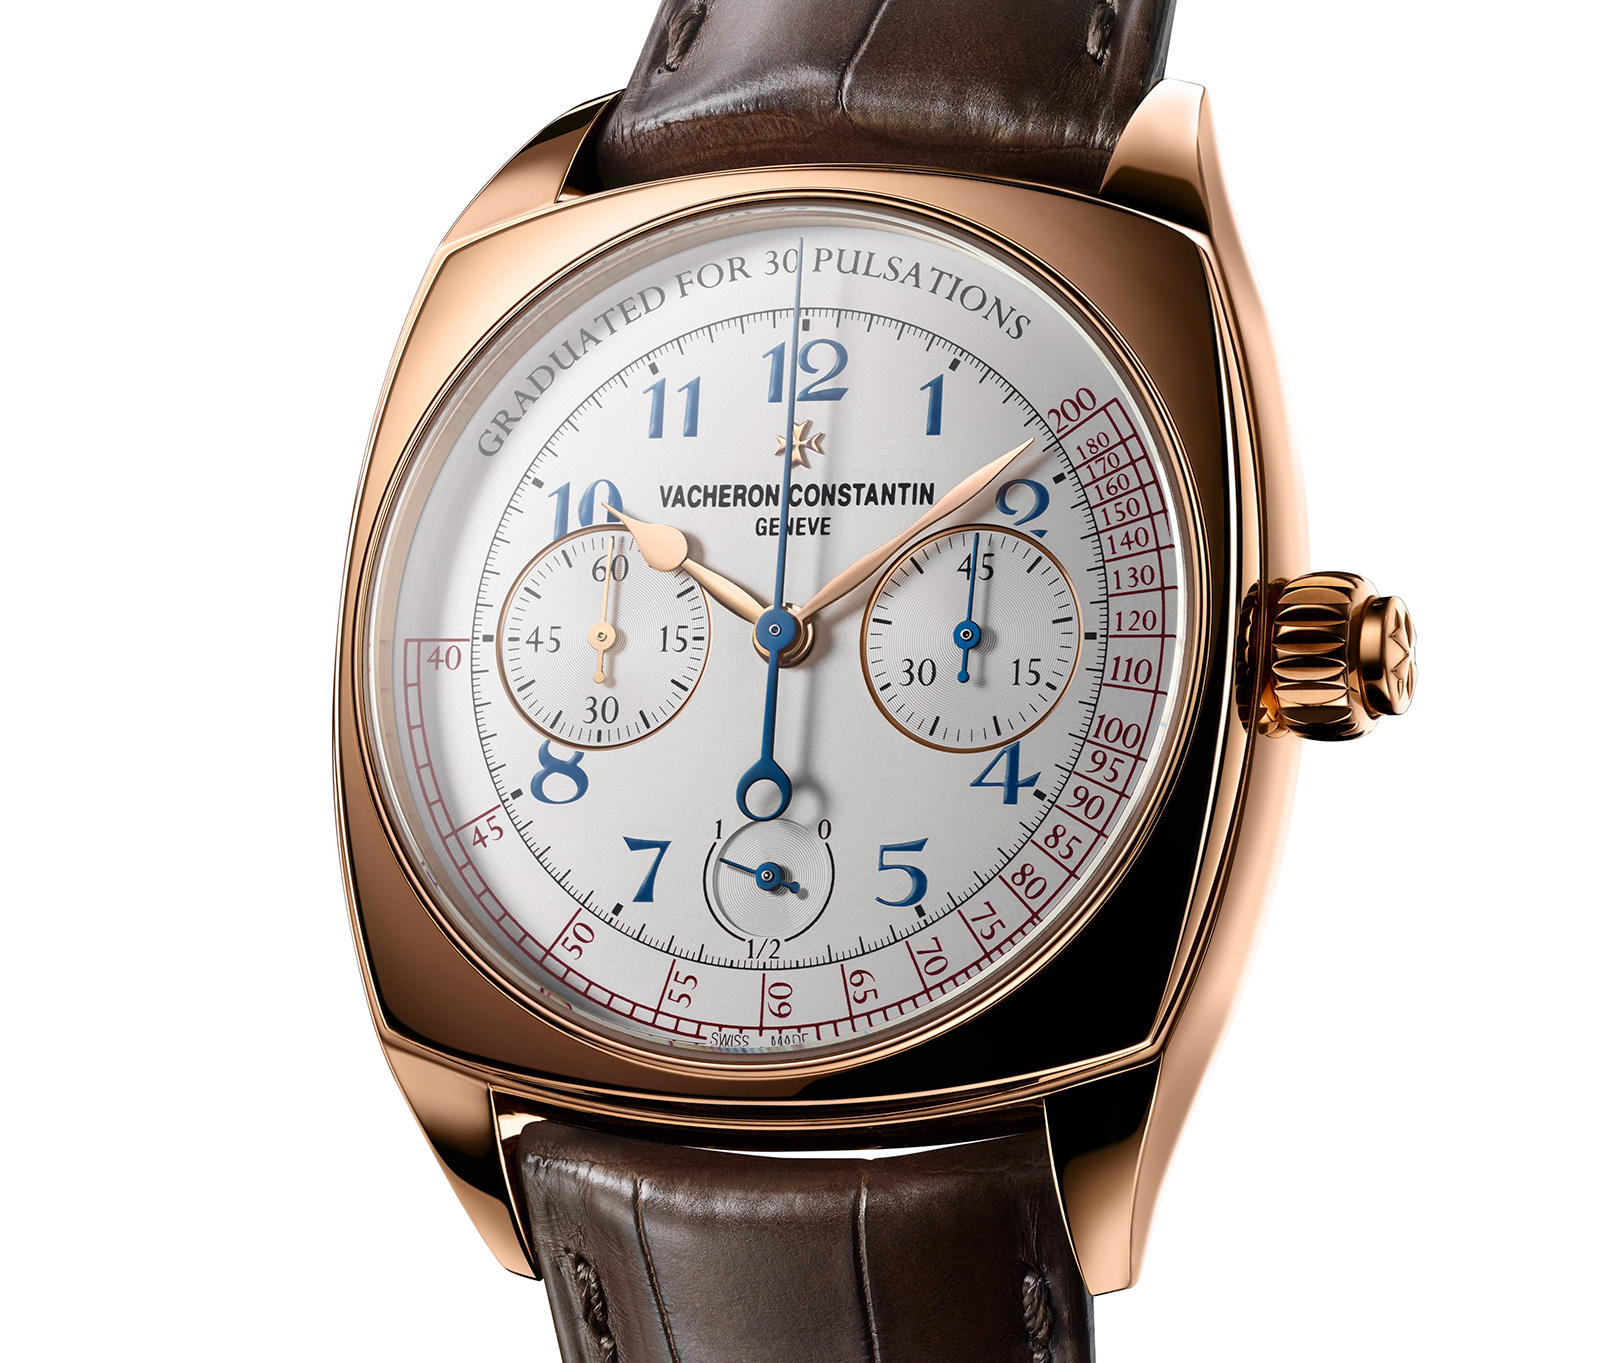 Side of Vacheron Constantin 18k rose gold Harmony Chronograph Watch